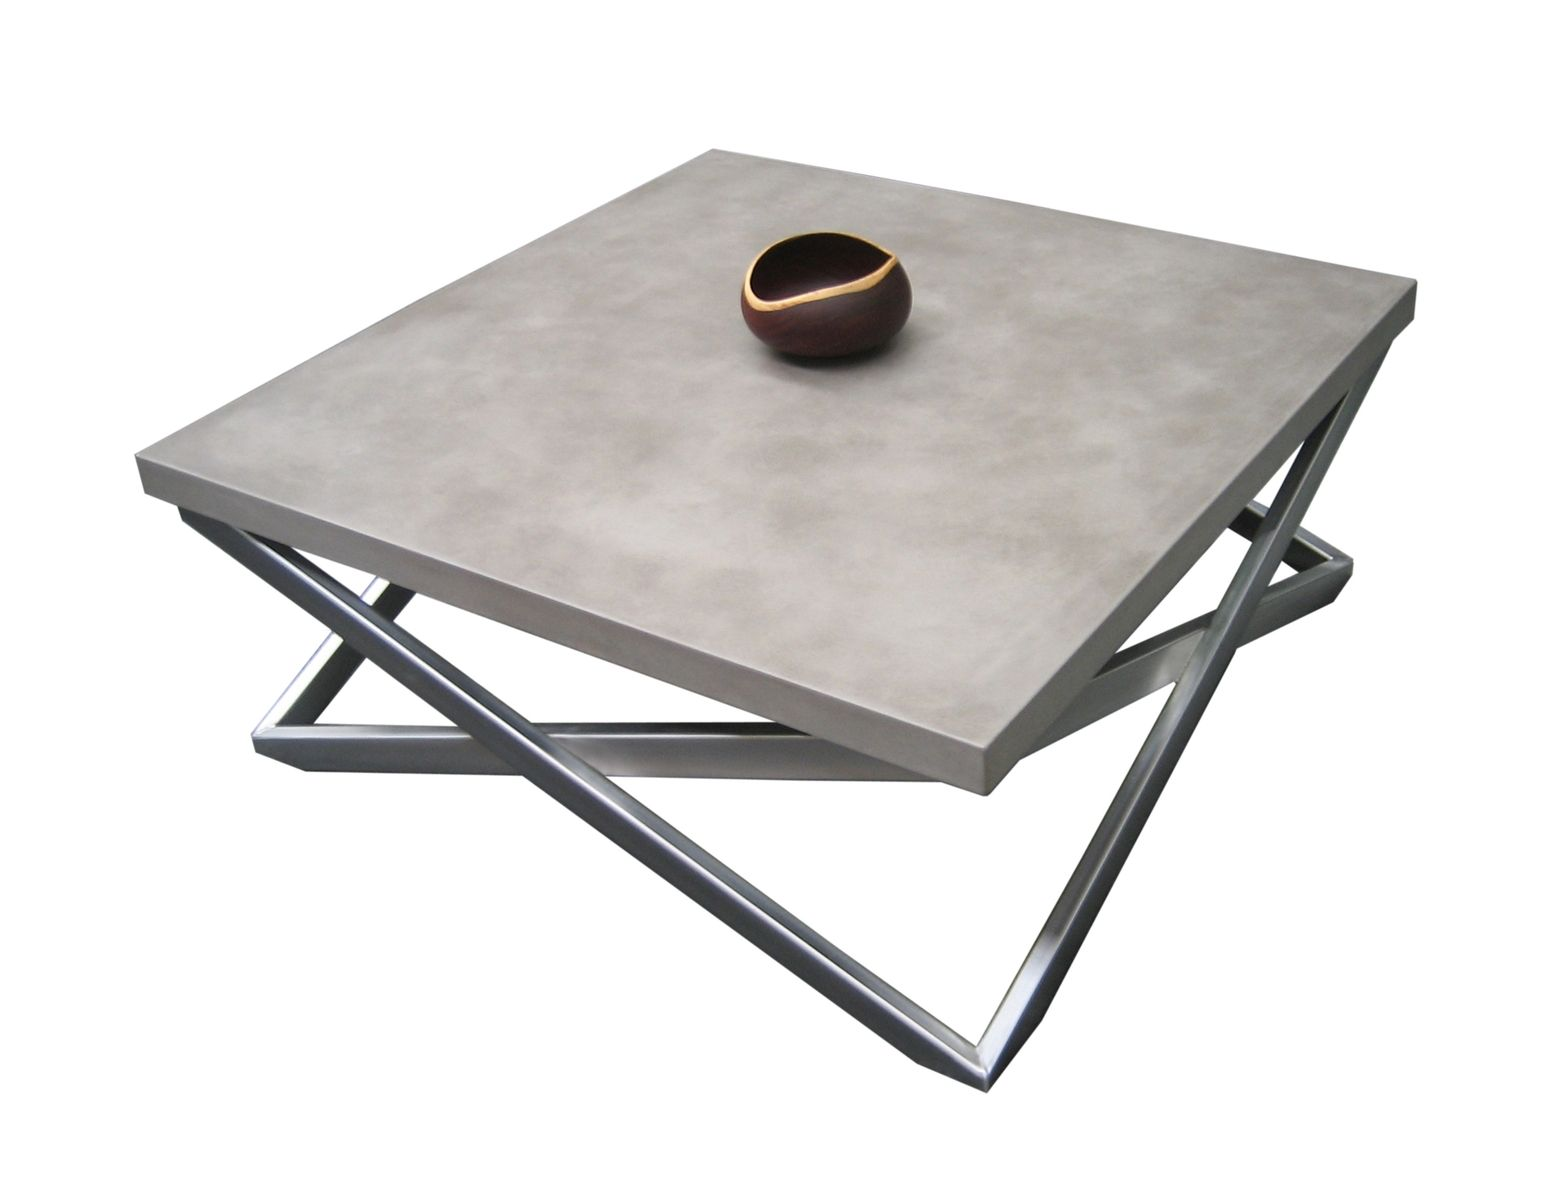 Custom mobius concrete coffee table by trueform concrete for Concrete coffee table